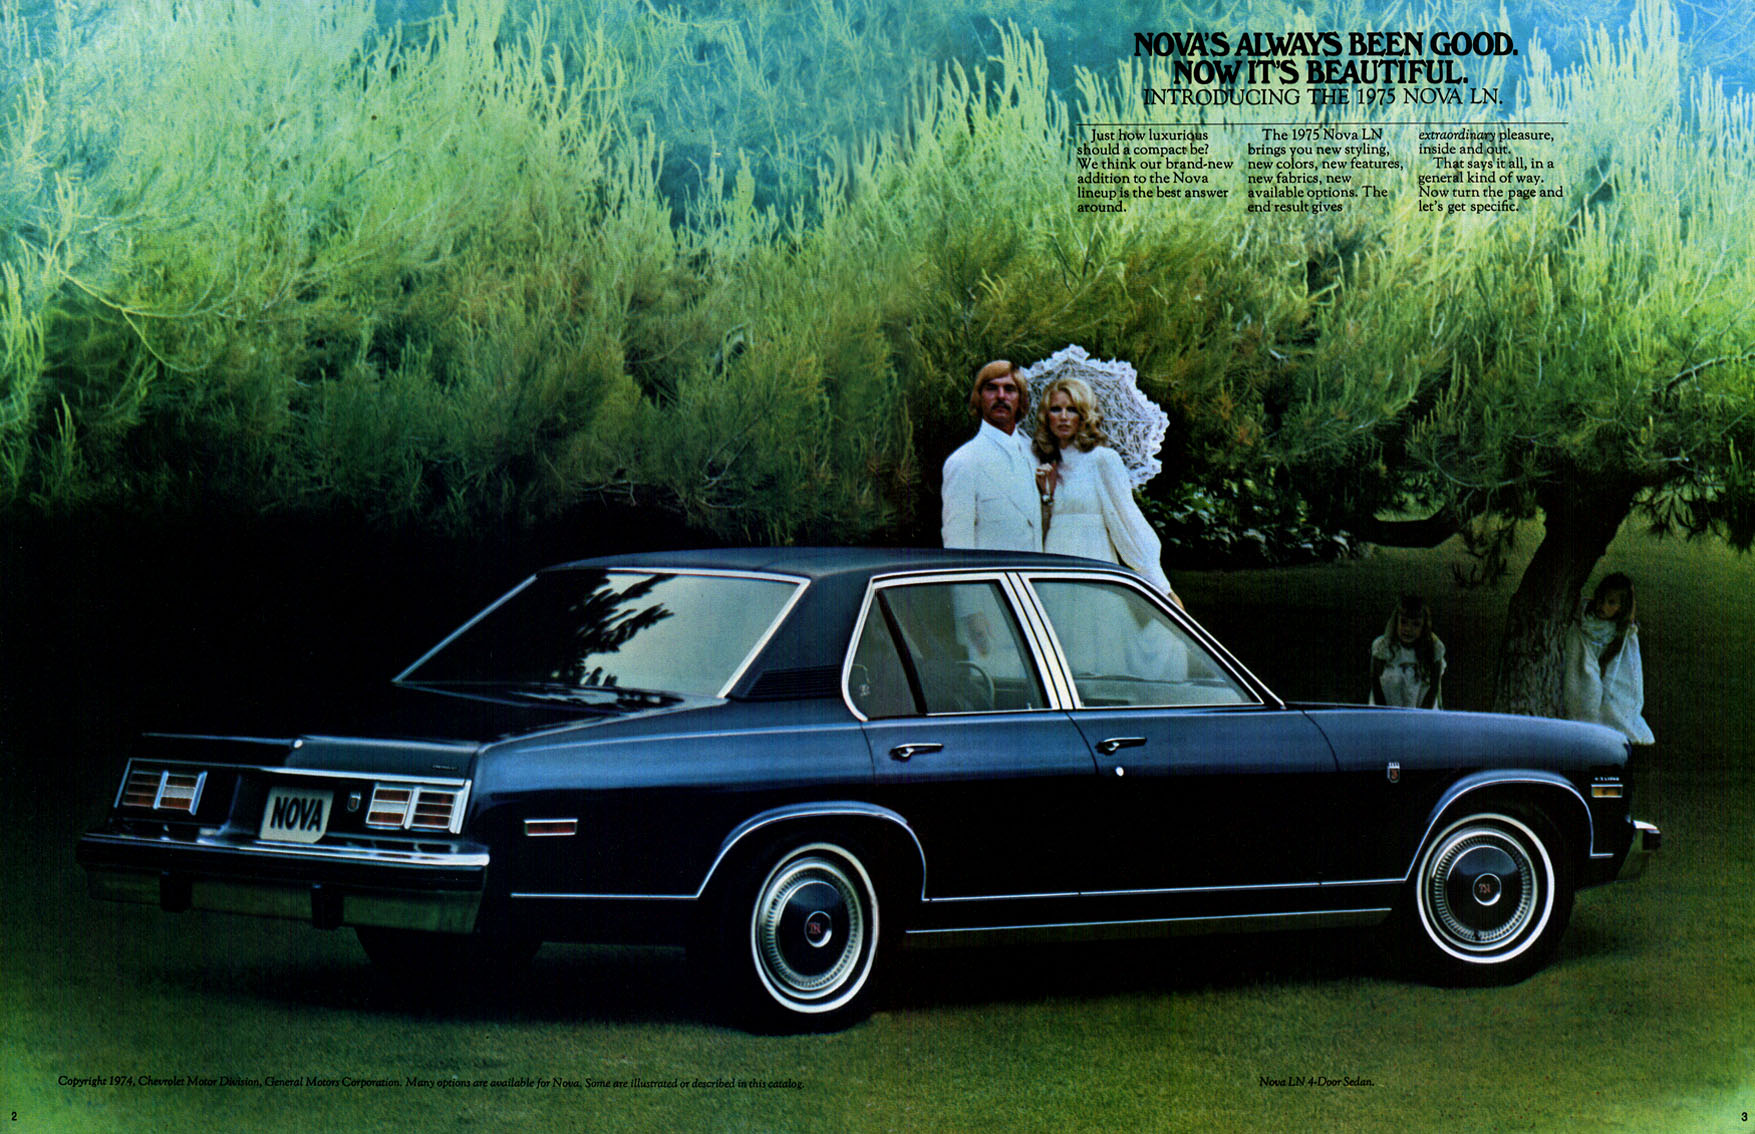 1979 Chevy Corvette Fuse Box Diagram further 1997 Acura Tl Starter Location as well Experience 2011 Sundance Film Festival together with 94 Buick Park Avenue Radio Wiring Diagram likewise Tag Ac. on 78 cadillac deville heater wiring diagram